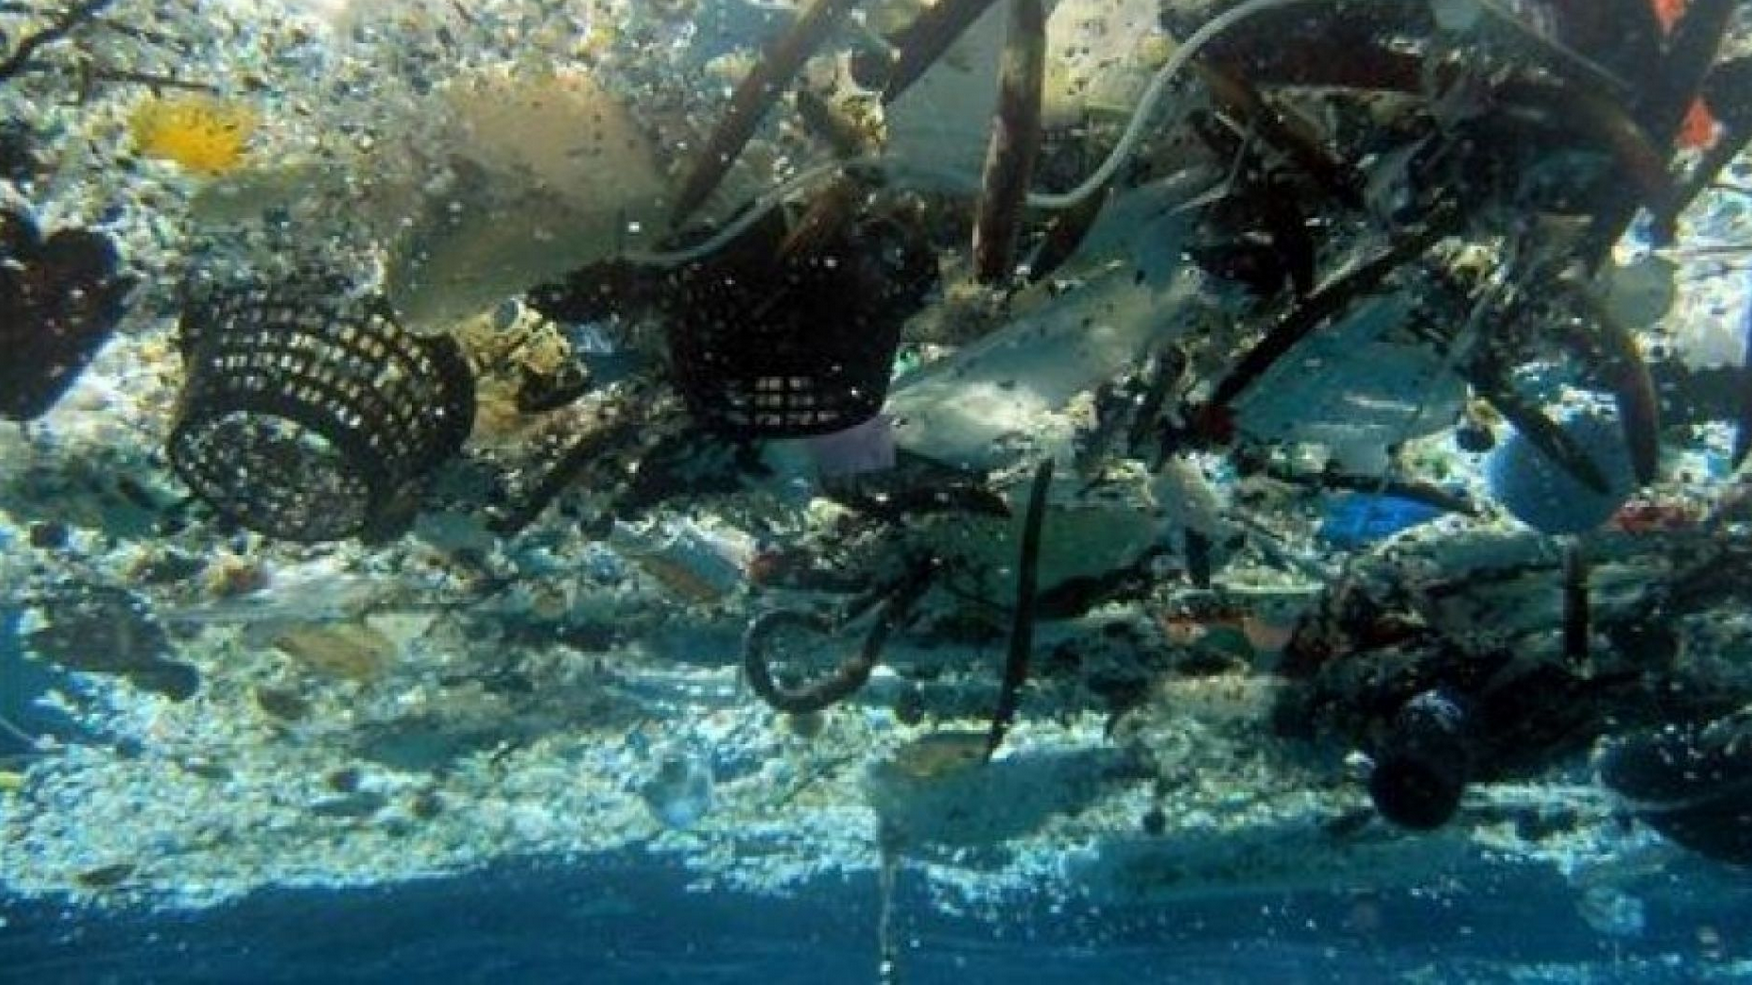 Great Pacific Garbage Patch, floating 'island' of trash in ocean, is now twice the size of Texas  3/23/18